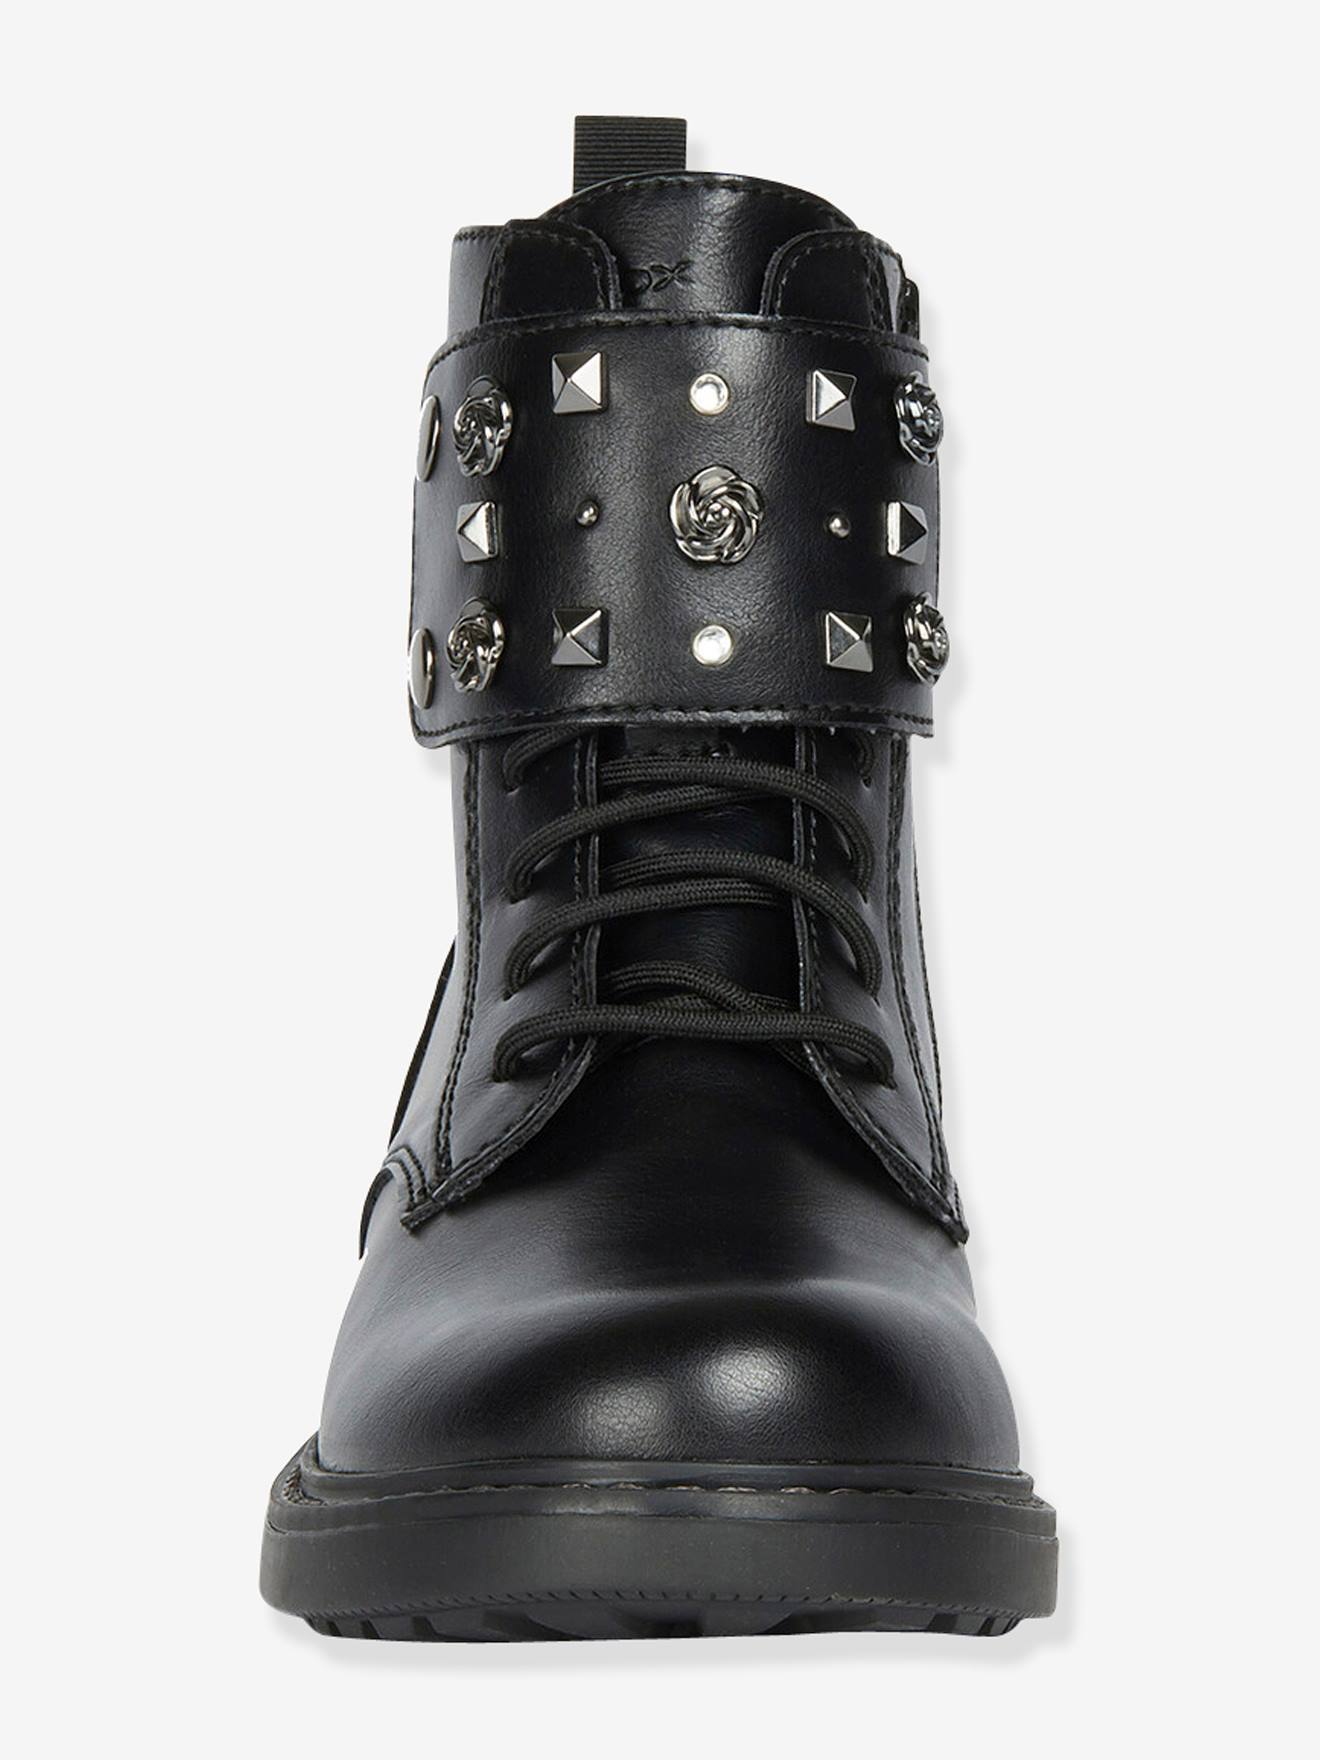 For Dark C GirlsBy Girl Eclair Black J SolidShoes Boots Geox® WEHID29Y